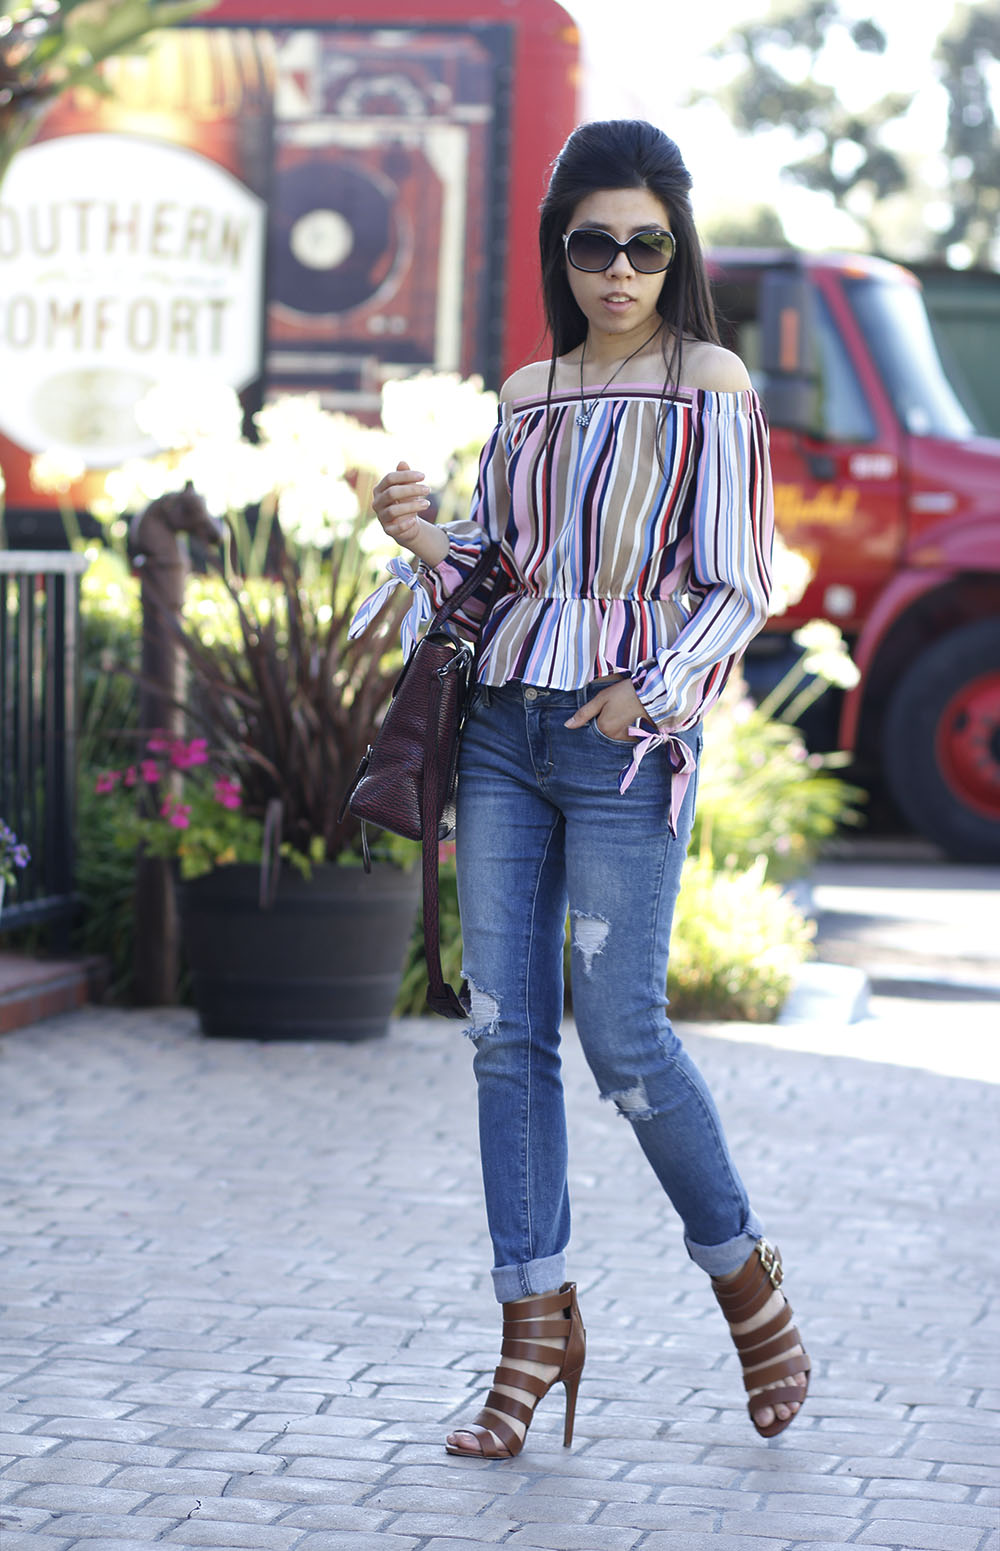 Adrienne Nguyen_Casual Summer Style _ Off the shoulder top with distressed jeans